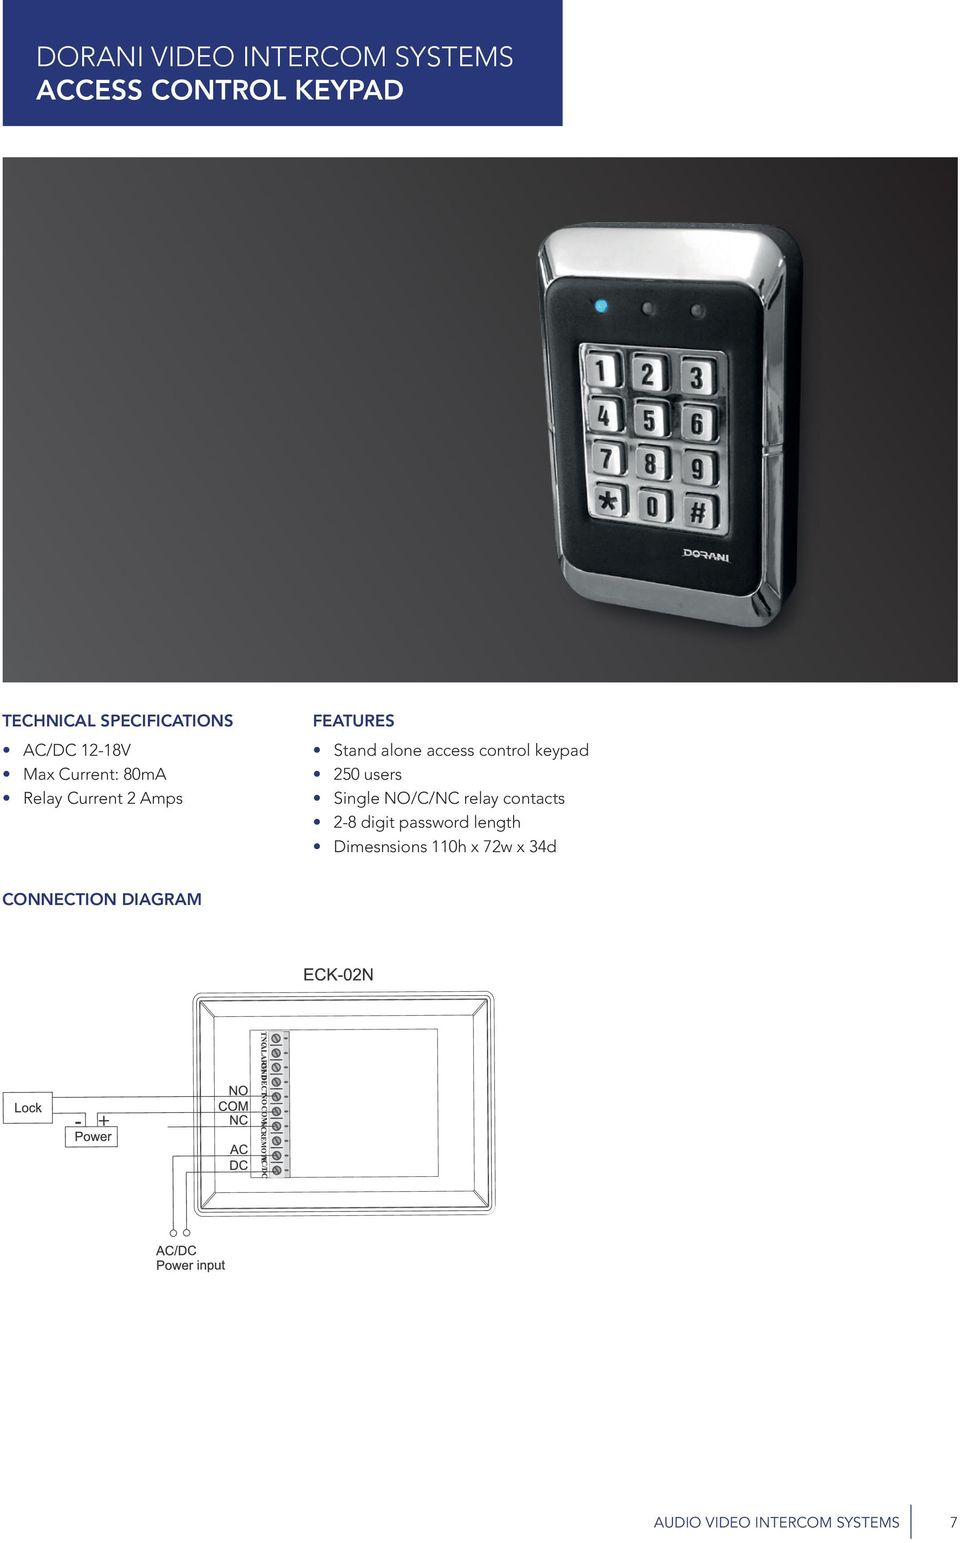 access control keypad 250 users Single NO/C/NC relay contacts 2-8 digit